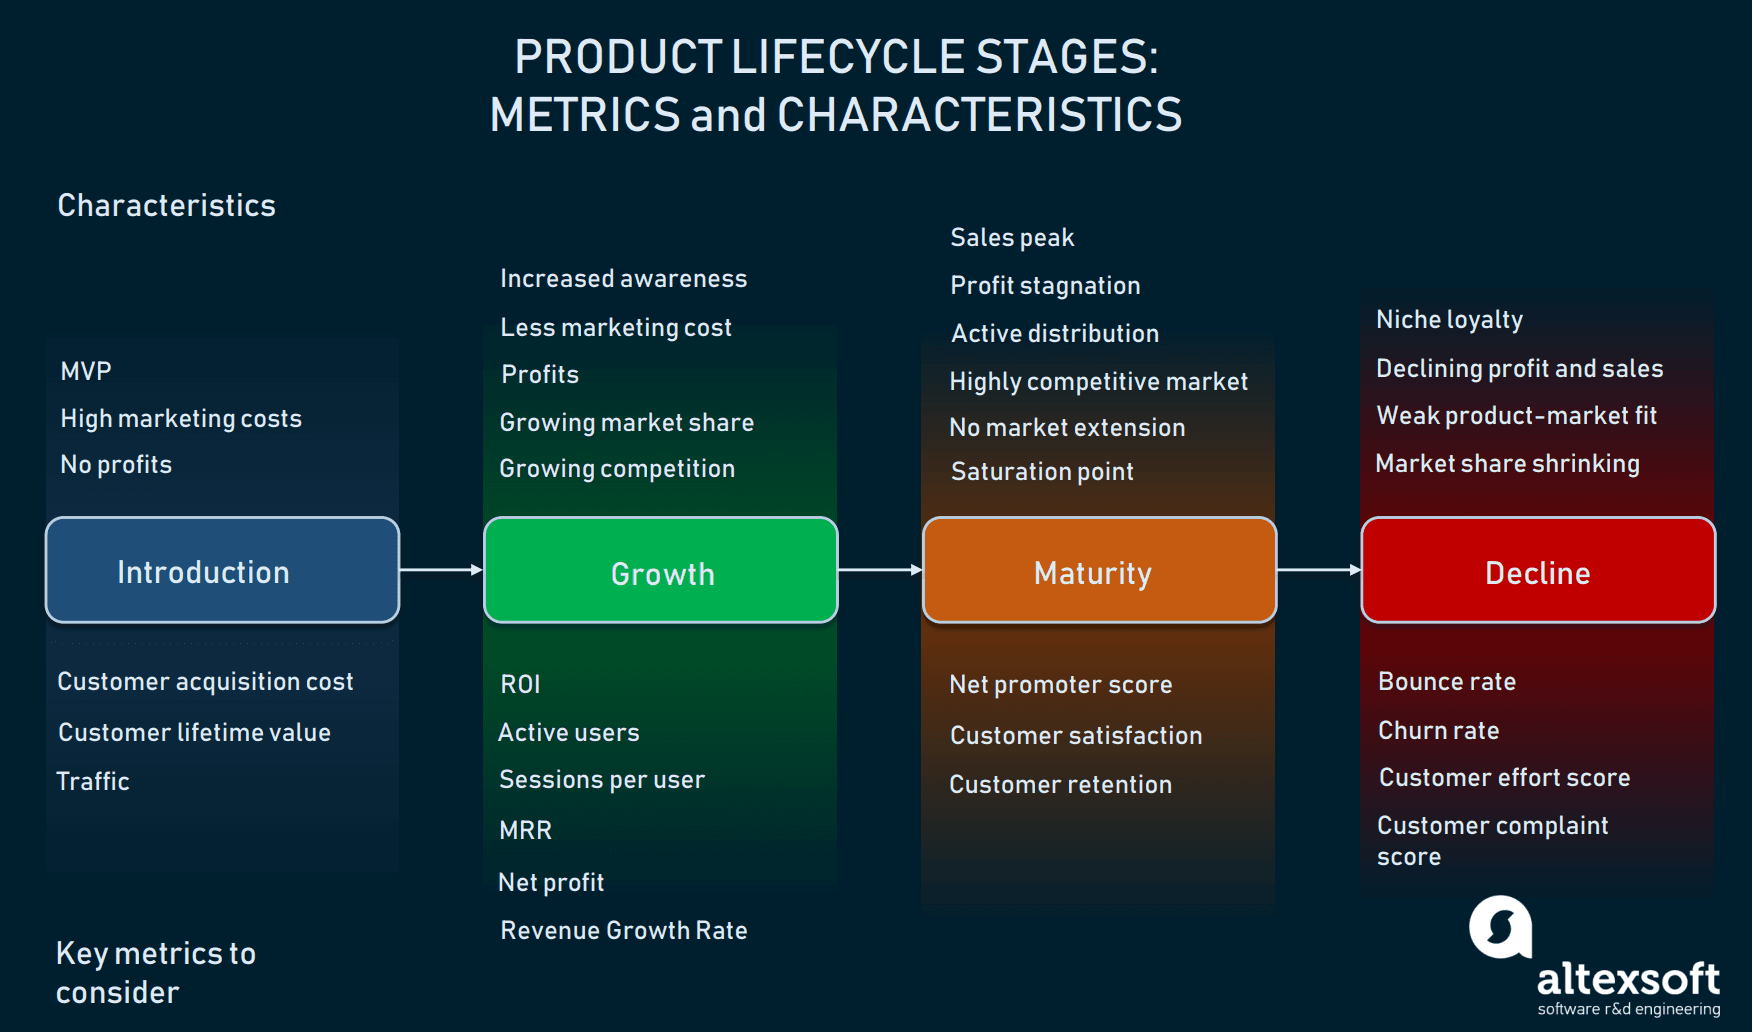 Product lifecycle stages with their characteristics and key metrics to focus on